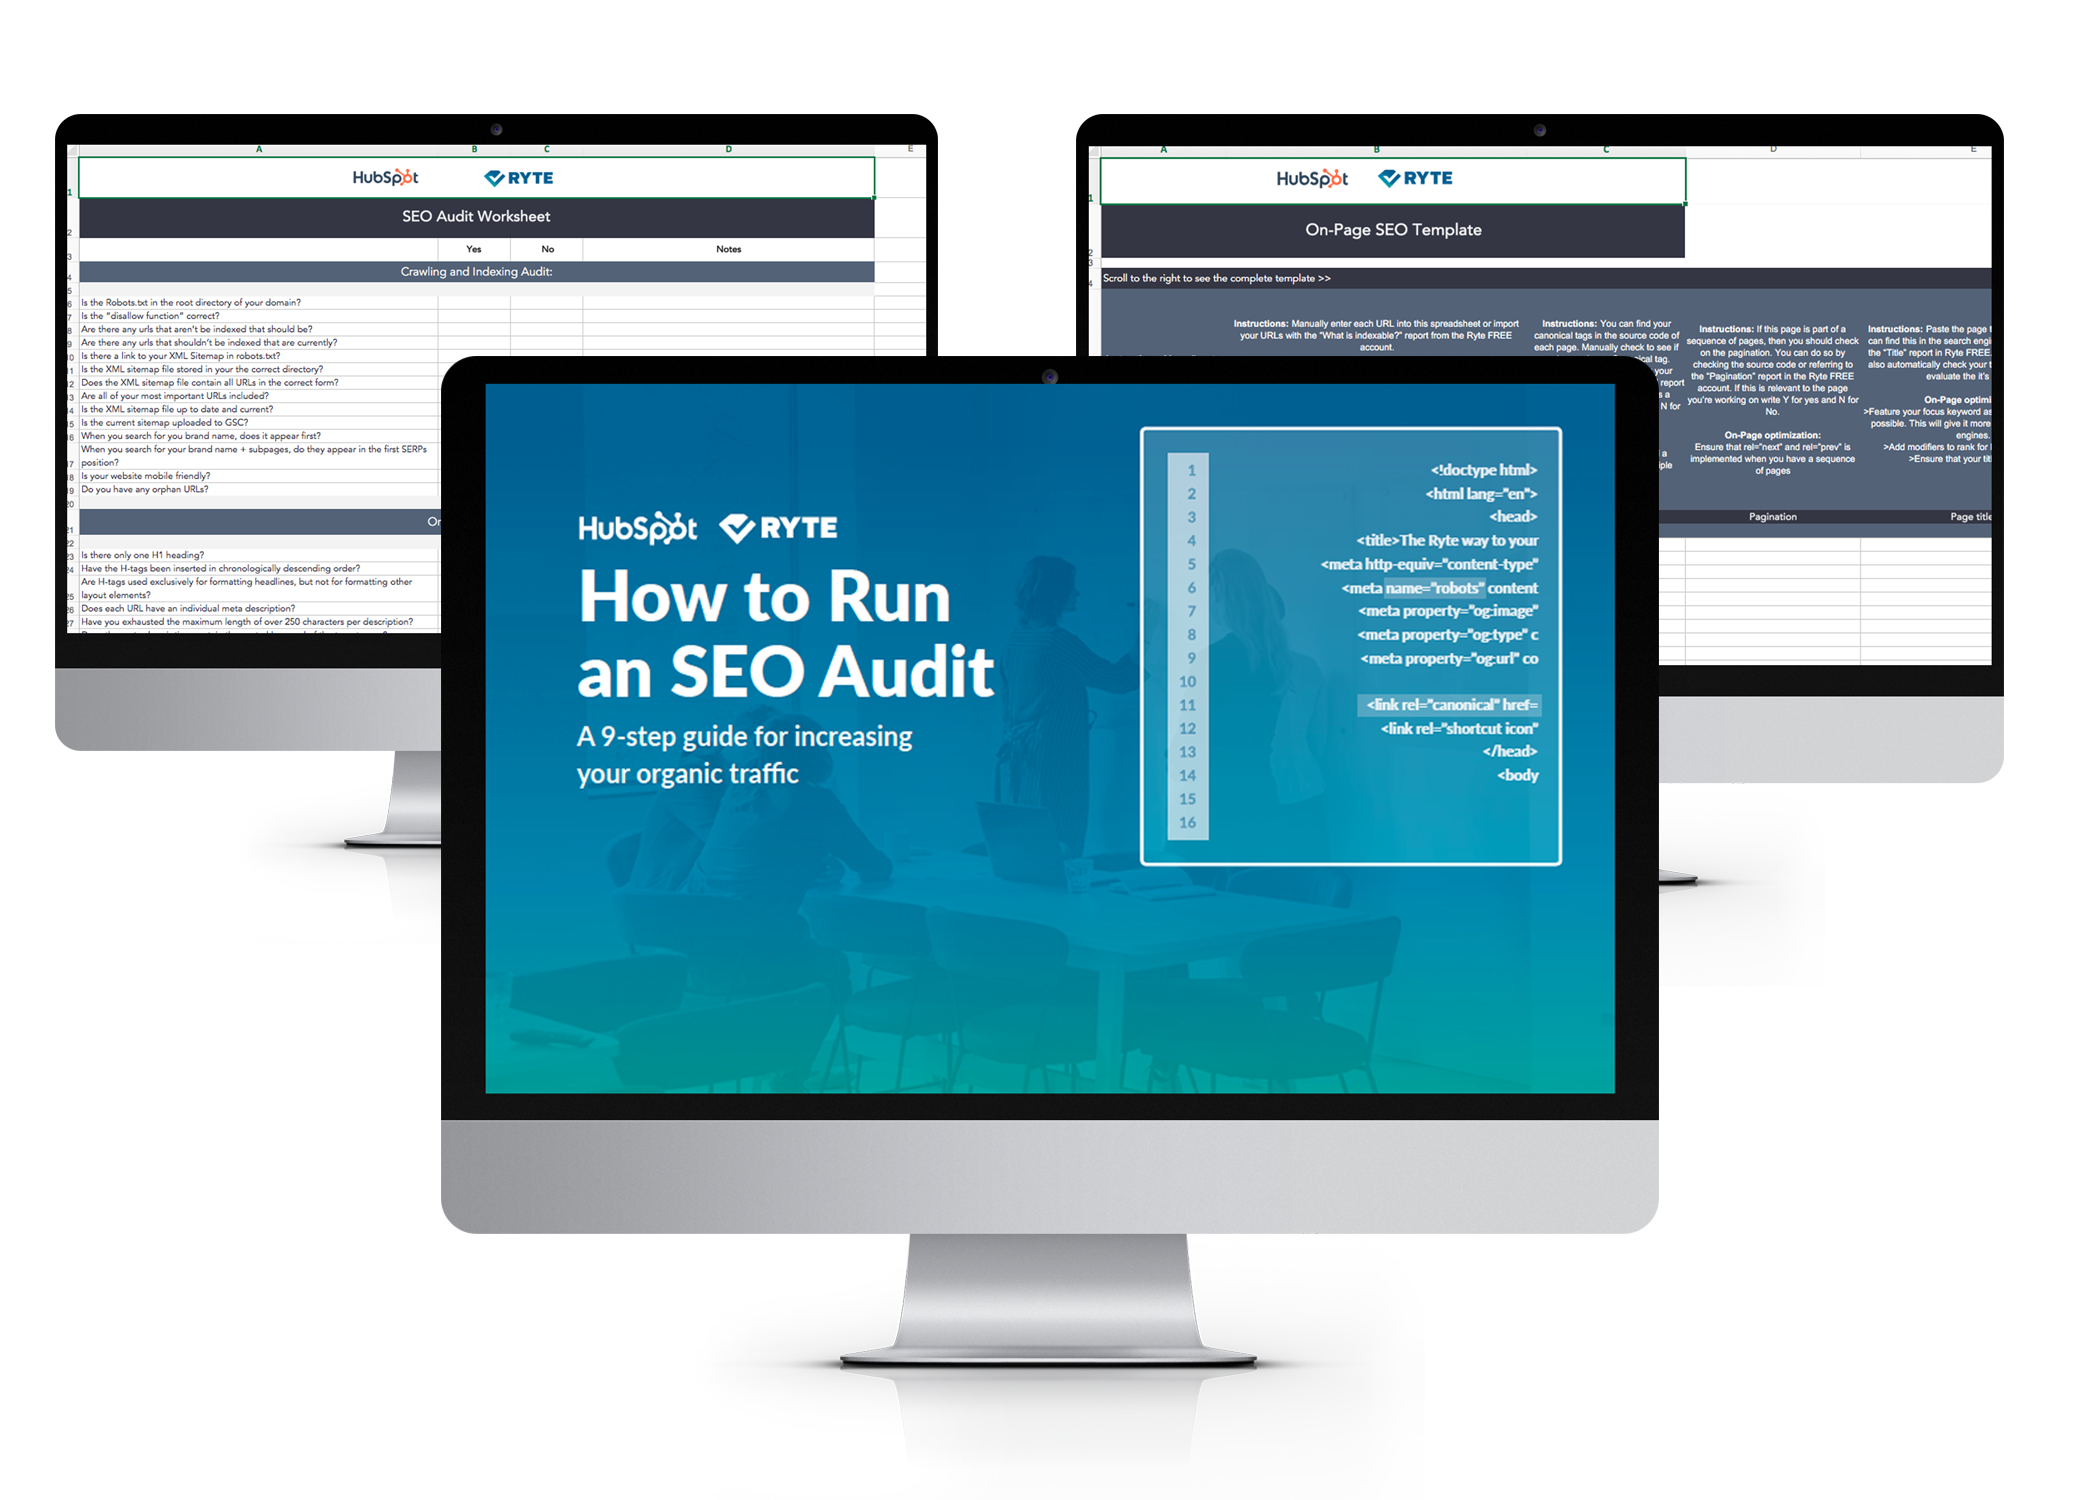 How to Run an SEO Audit